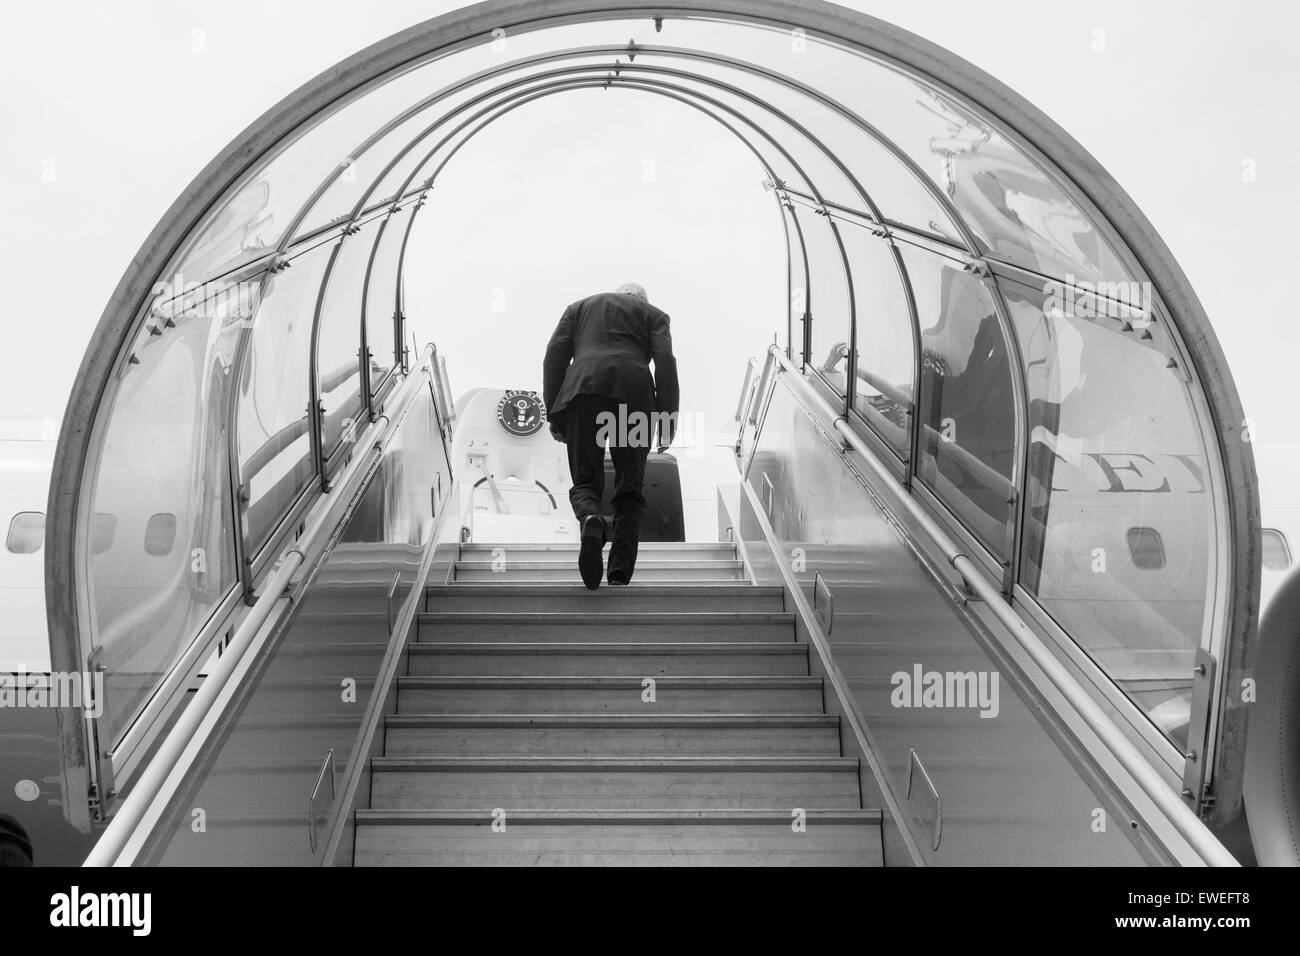 U.S. Secretary of State John Kerry - seen in black-and-white - climbs the stairs to his airplane for a flight to - Stock Image